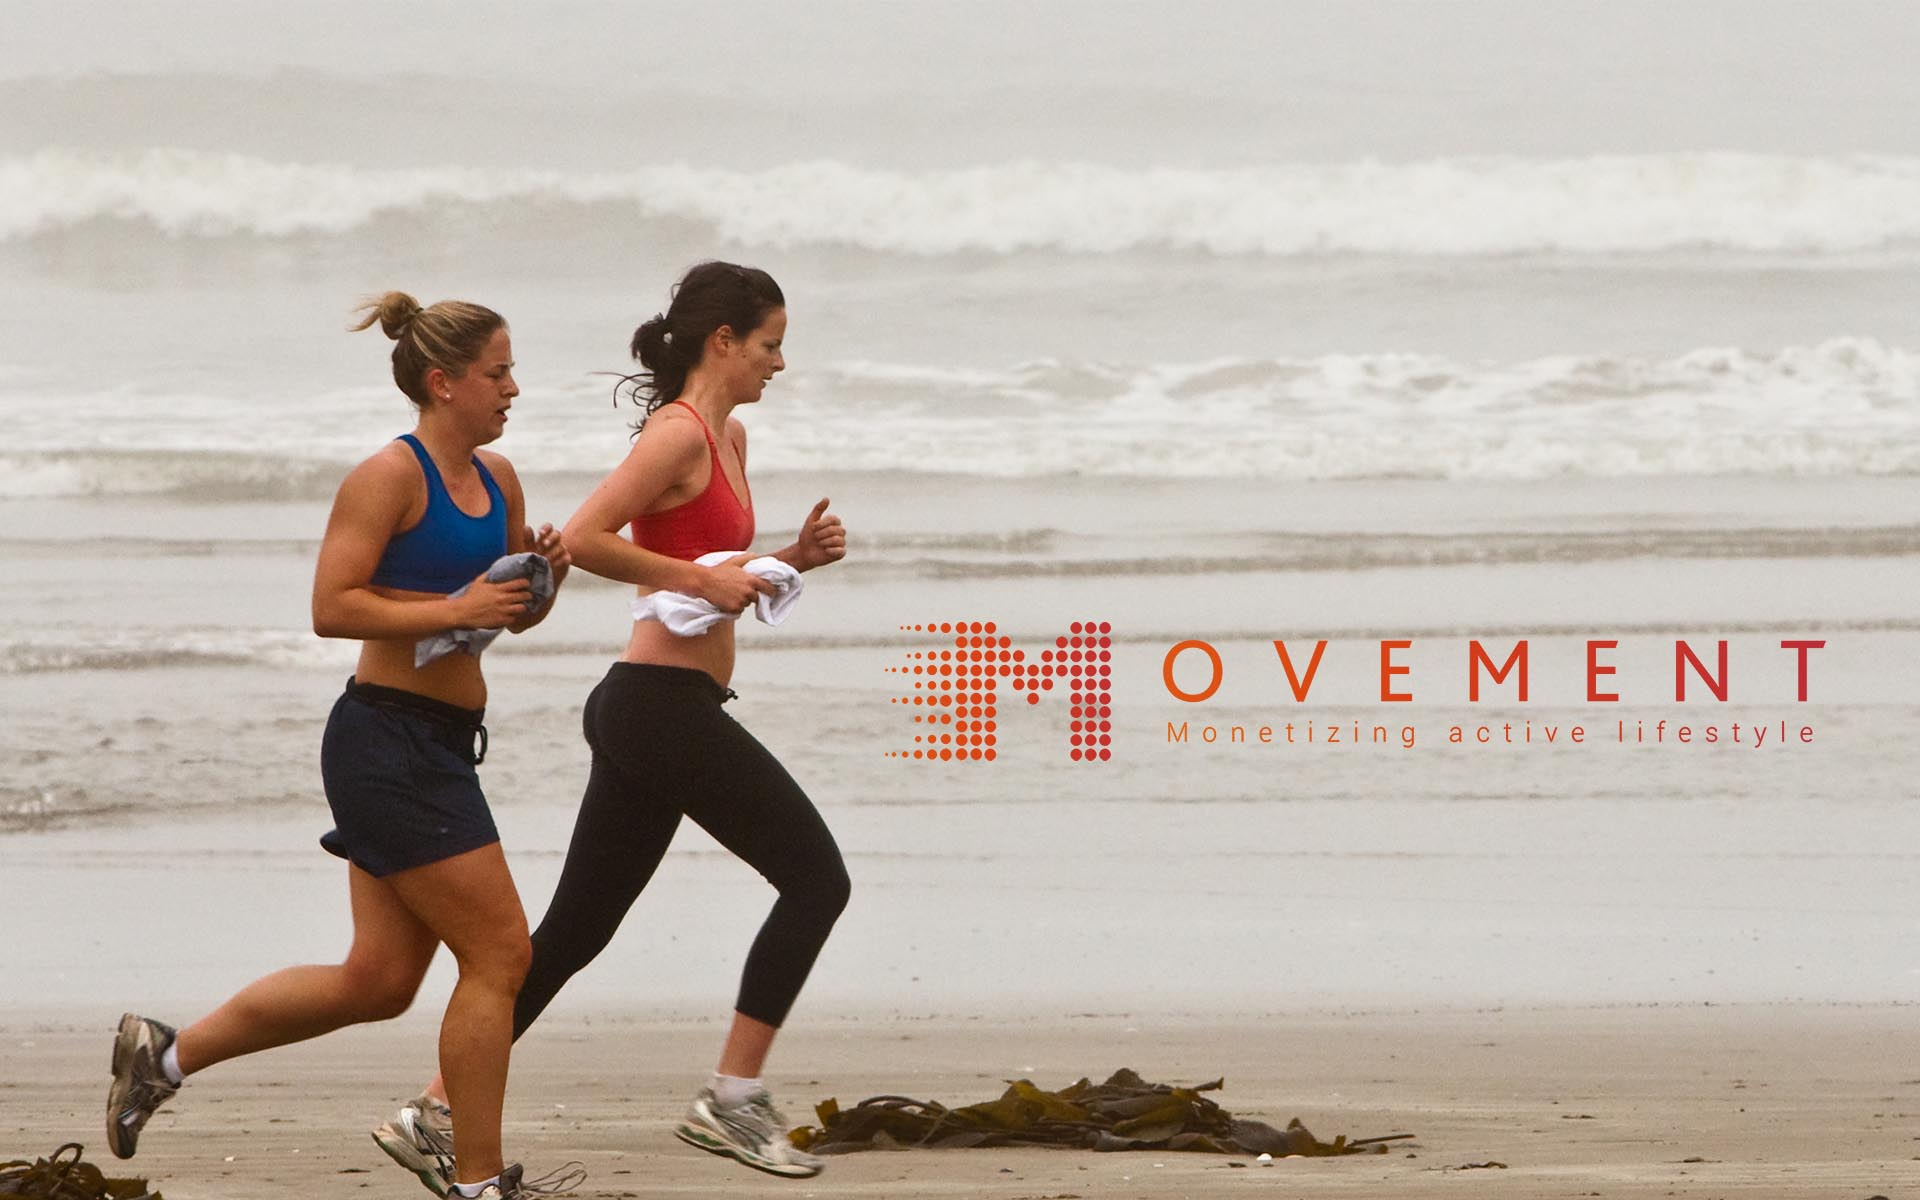 Movement App – Revolutionary Ecosystem that Rewards Users for Physical Activity